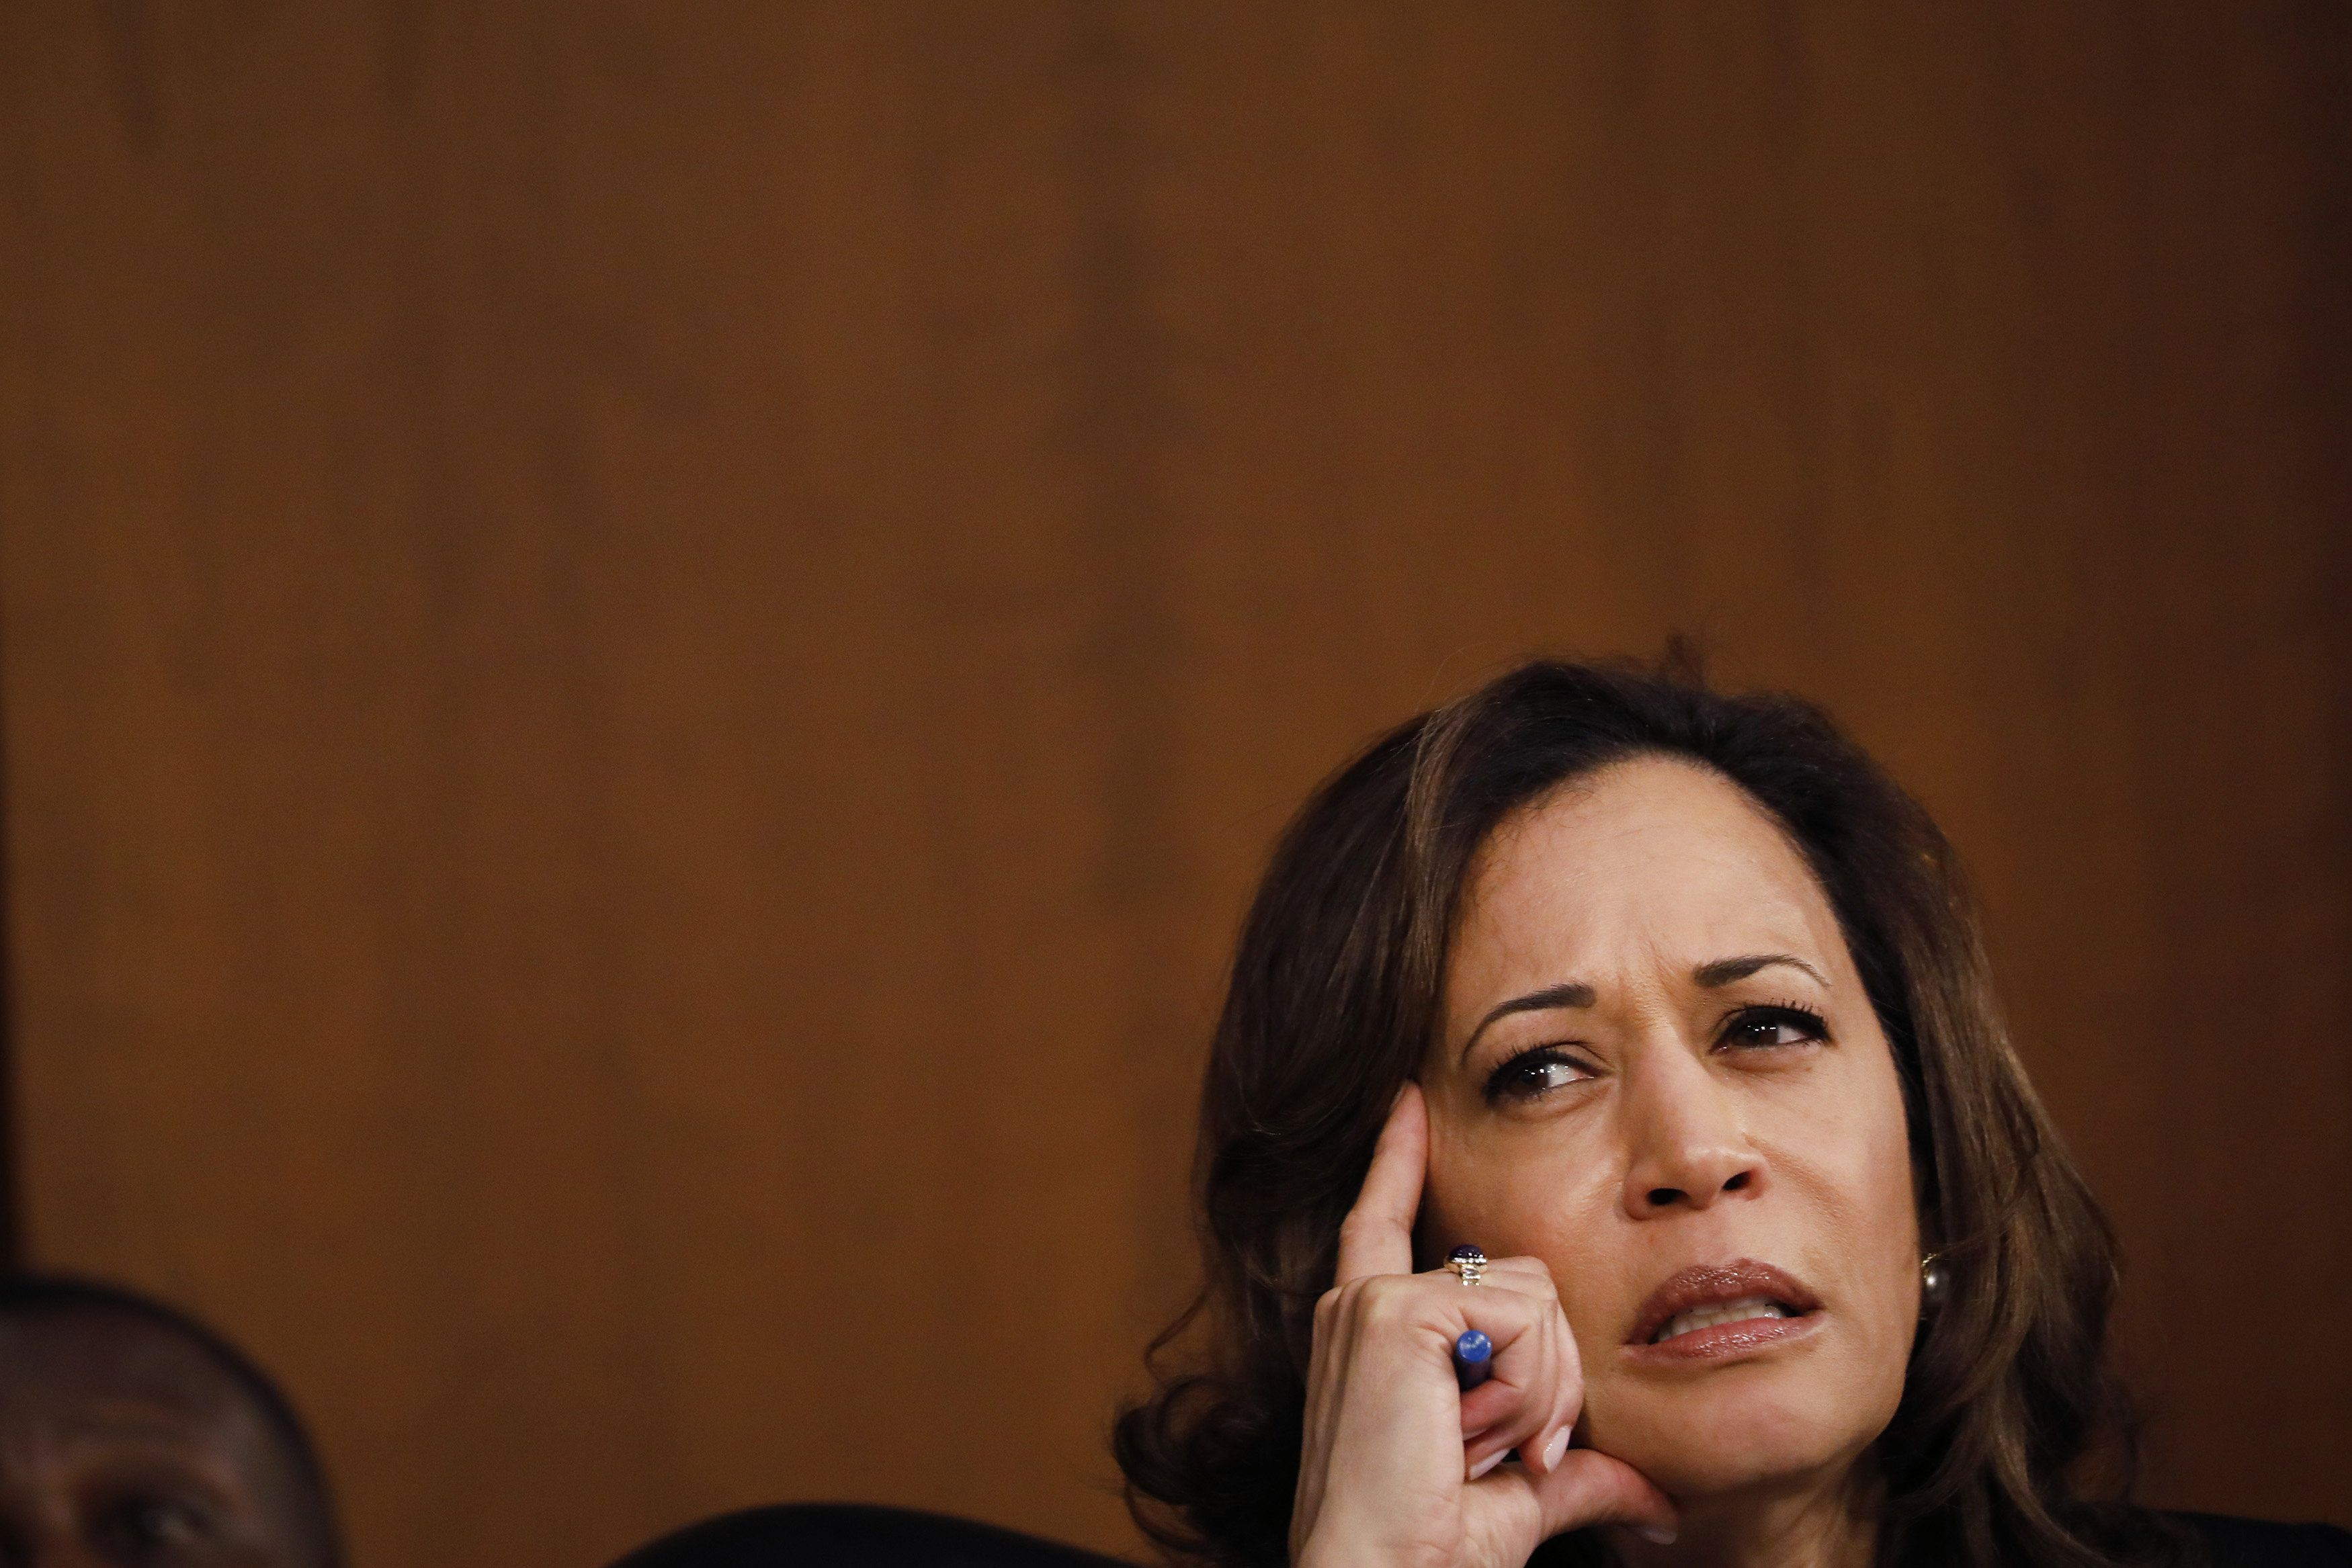 Senator Kamala Harris, a Democrat from California, listens during a Senate Judiciary Committee confirmation hearing for Brett Kavanaugh, U.S. Supreme Court associate justice nominee for U.S. President Donald Trump, not pictured, in Washington, D.C., U.S., on Tuesday, Sept. 4, 2018. If confirmed, Kavanaugh would fortify the high court's conservative majority, and spotlight the rightward march of the federal judiciary under Trump and the GOP-controlled Senate. Photographer: Aaron P. Bernstein/Bloomberg via Getty Images